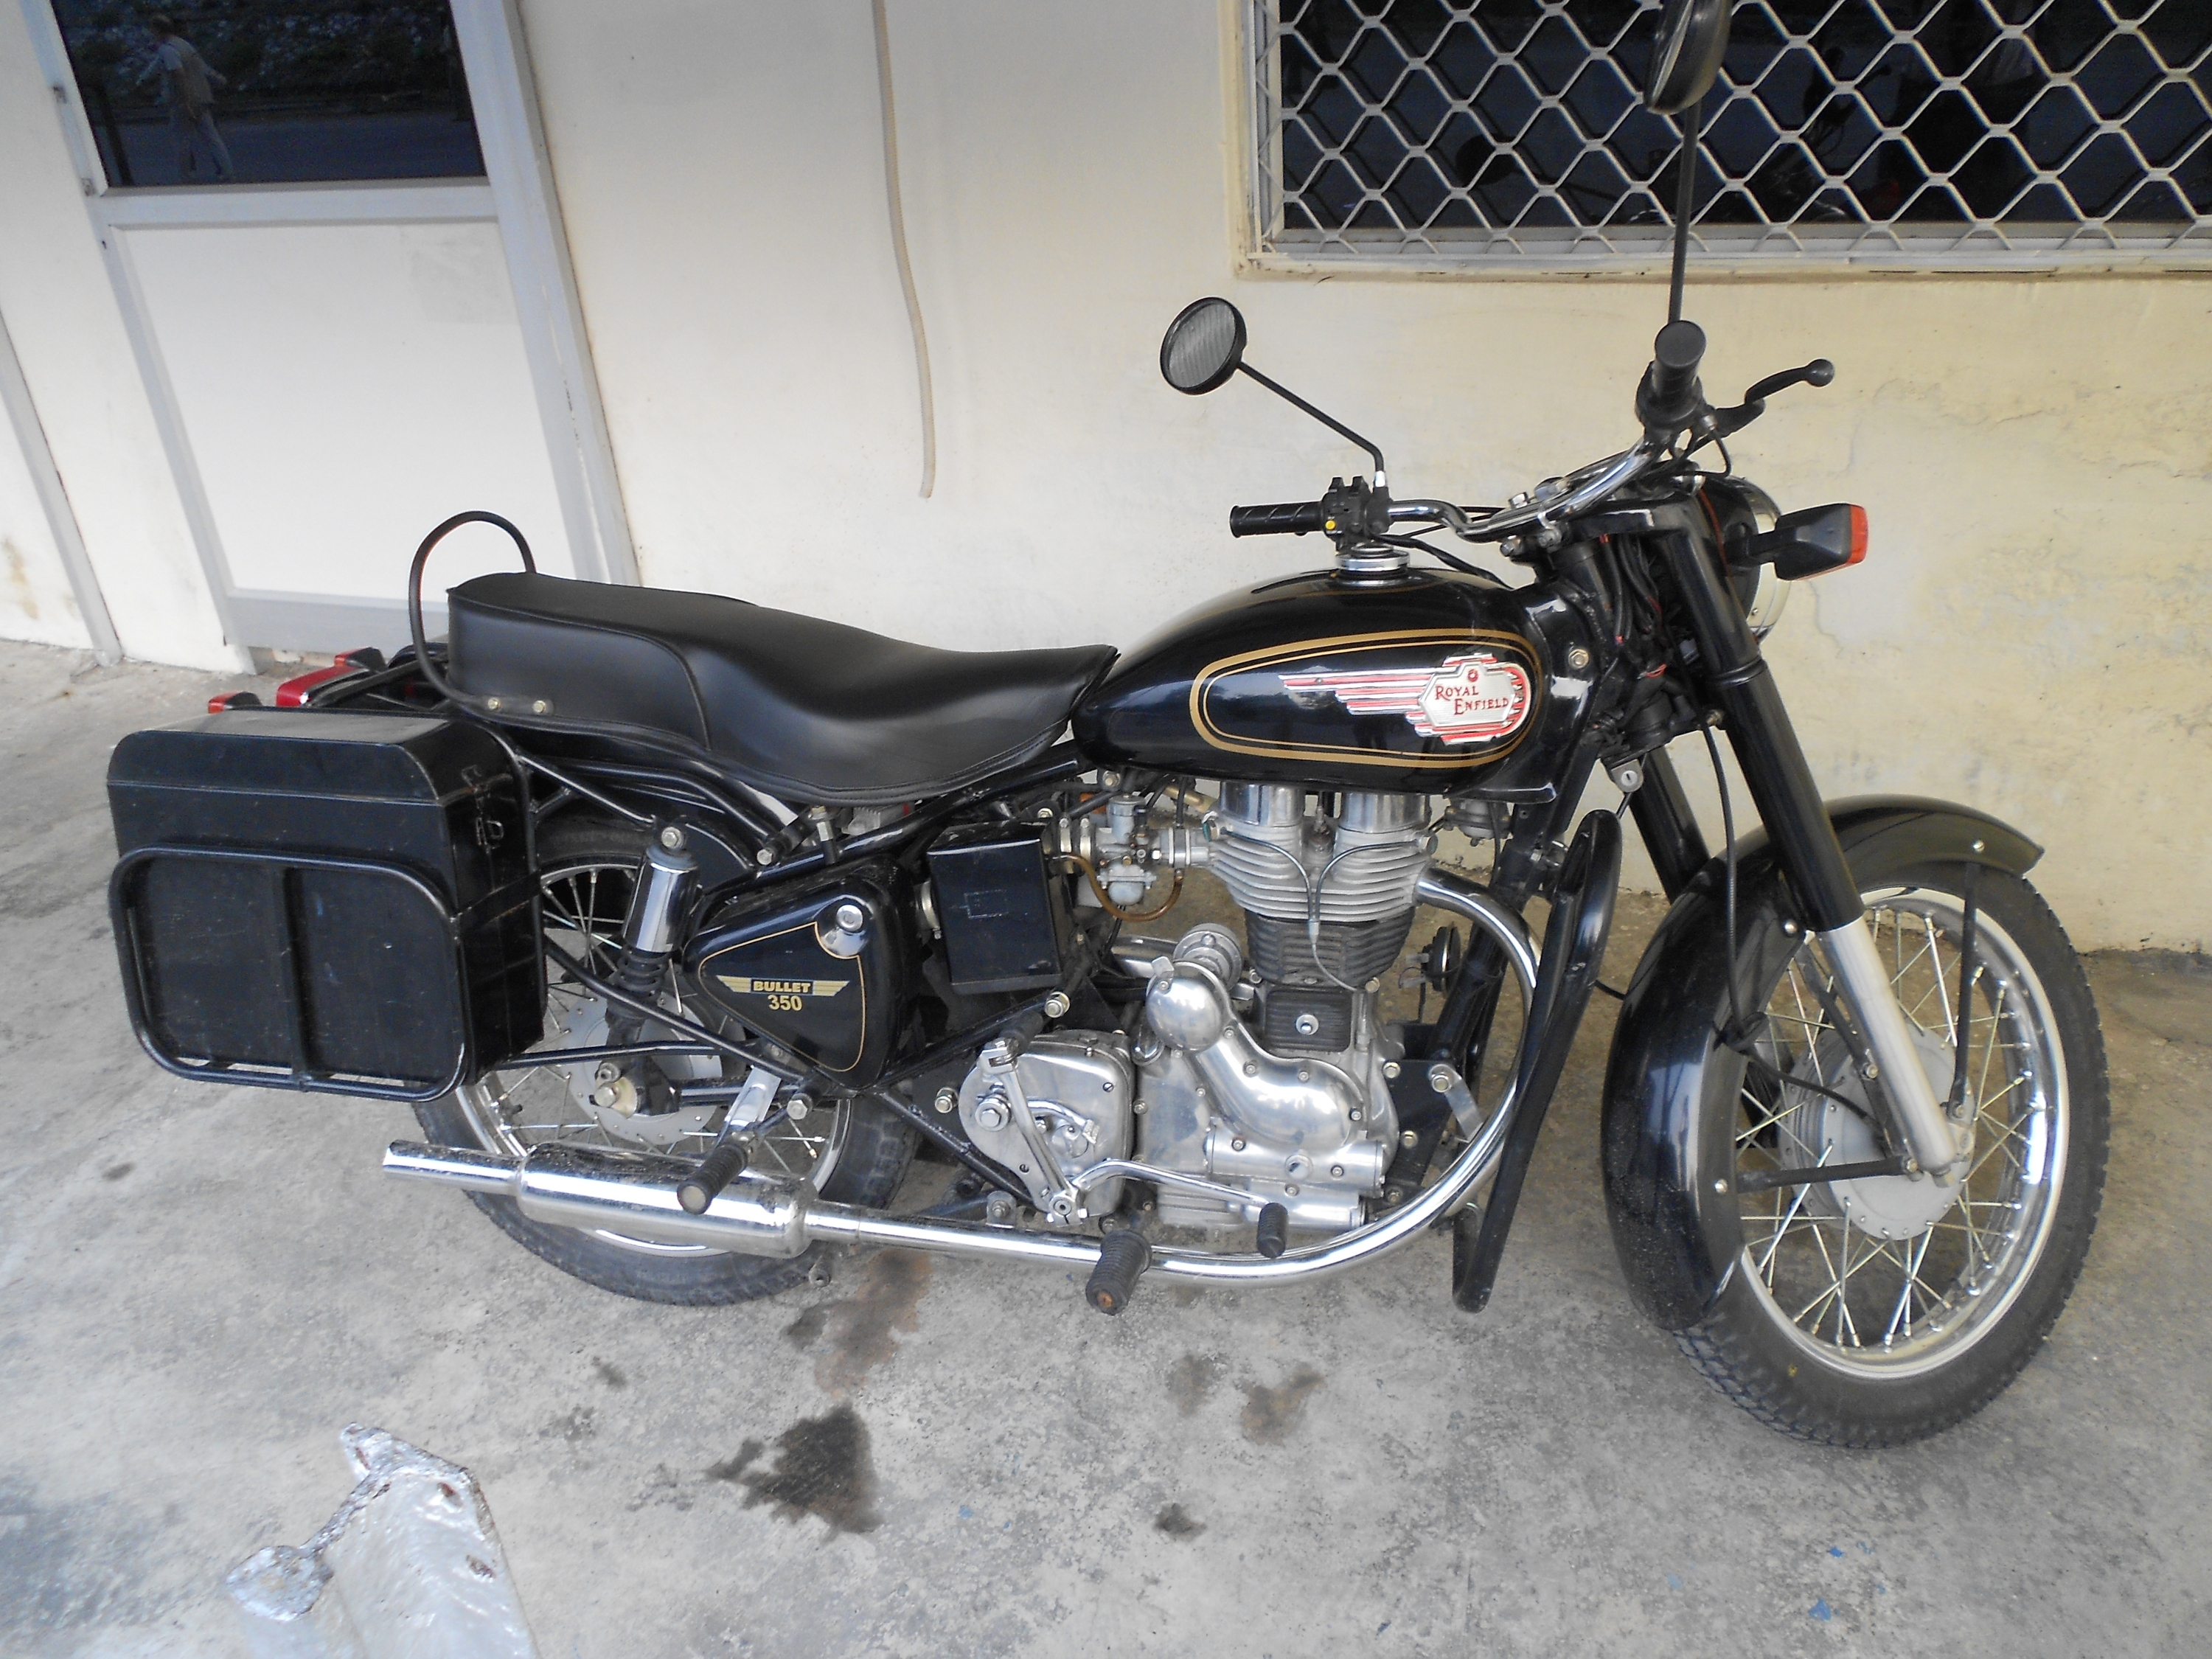 Royal Enfield Bullet 500 Army 2001 images #126035